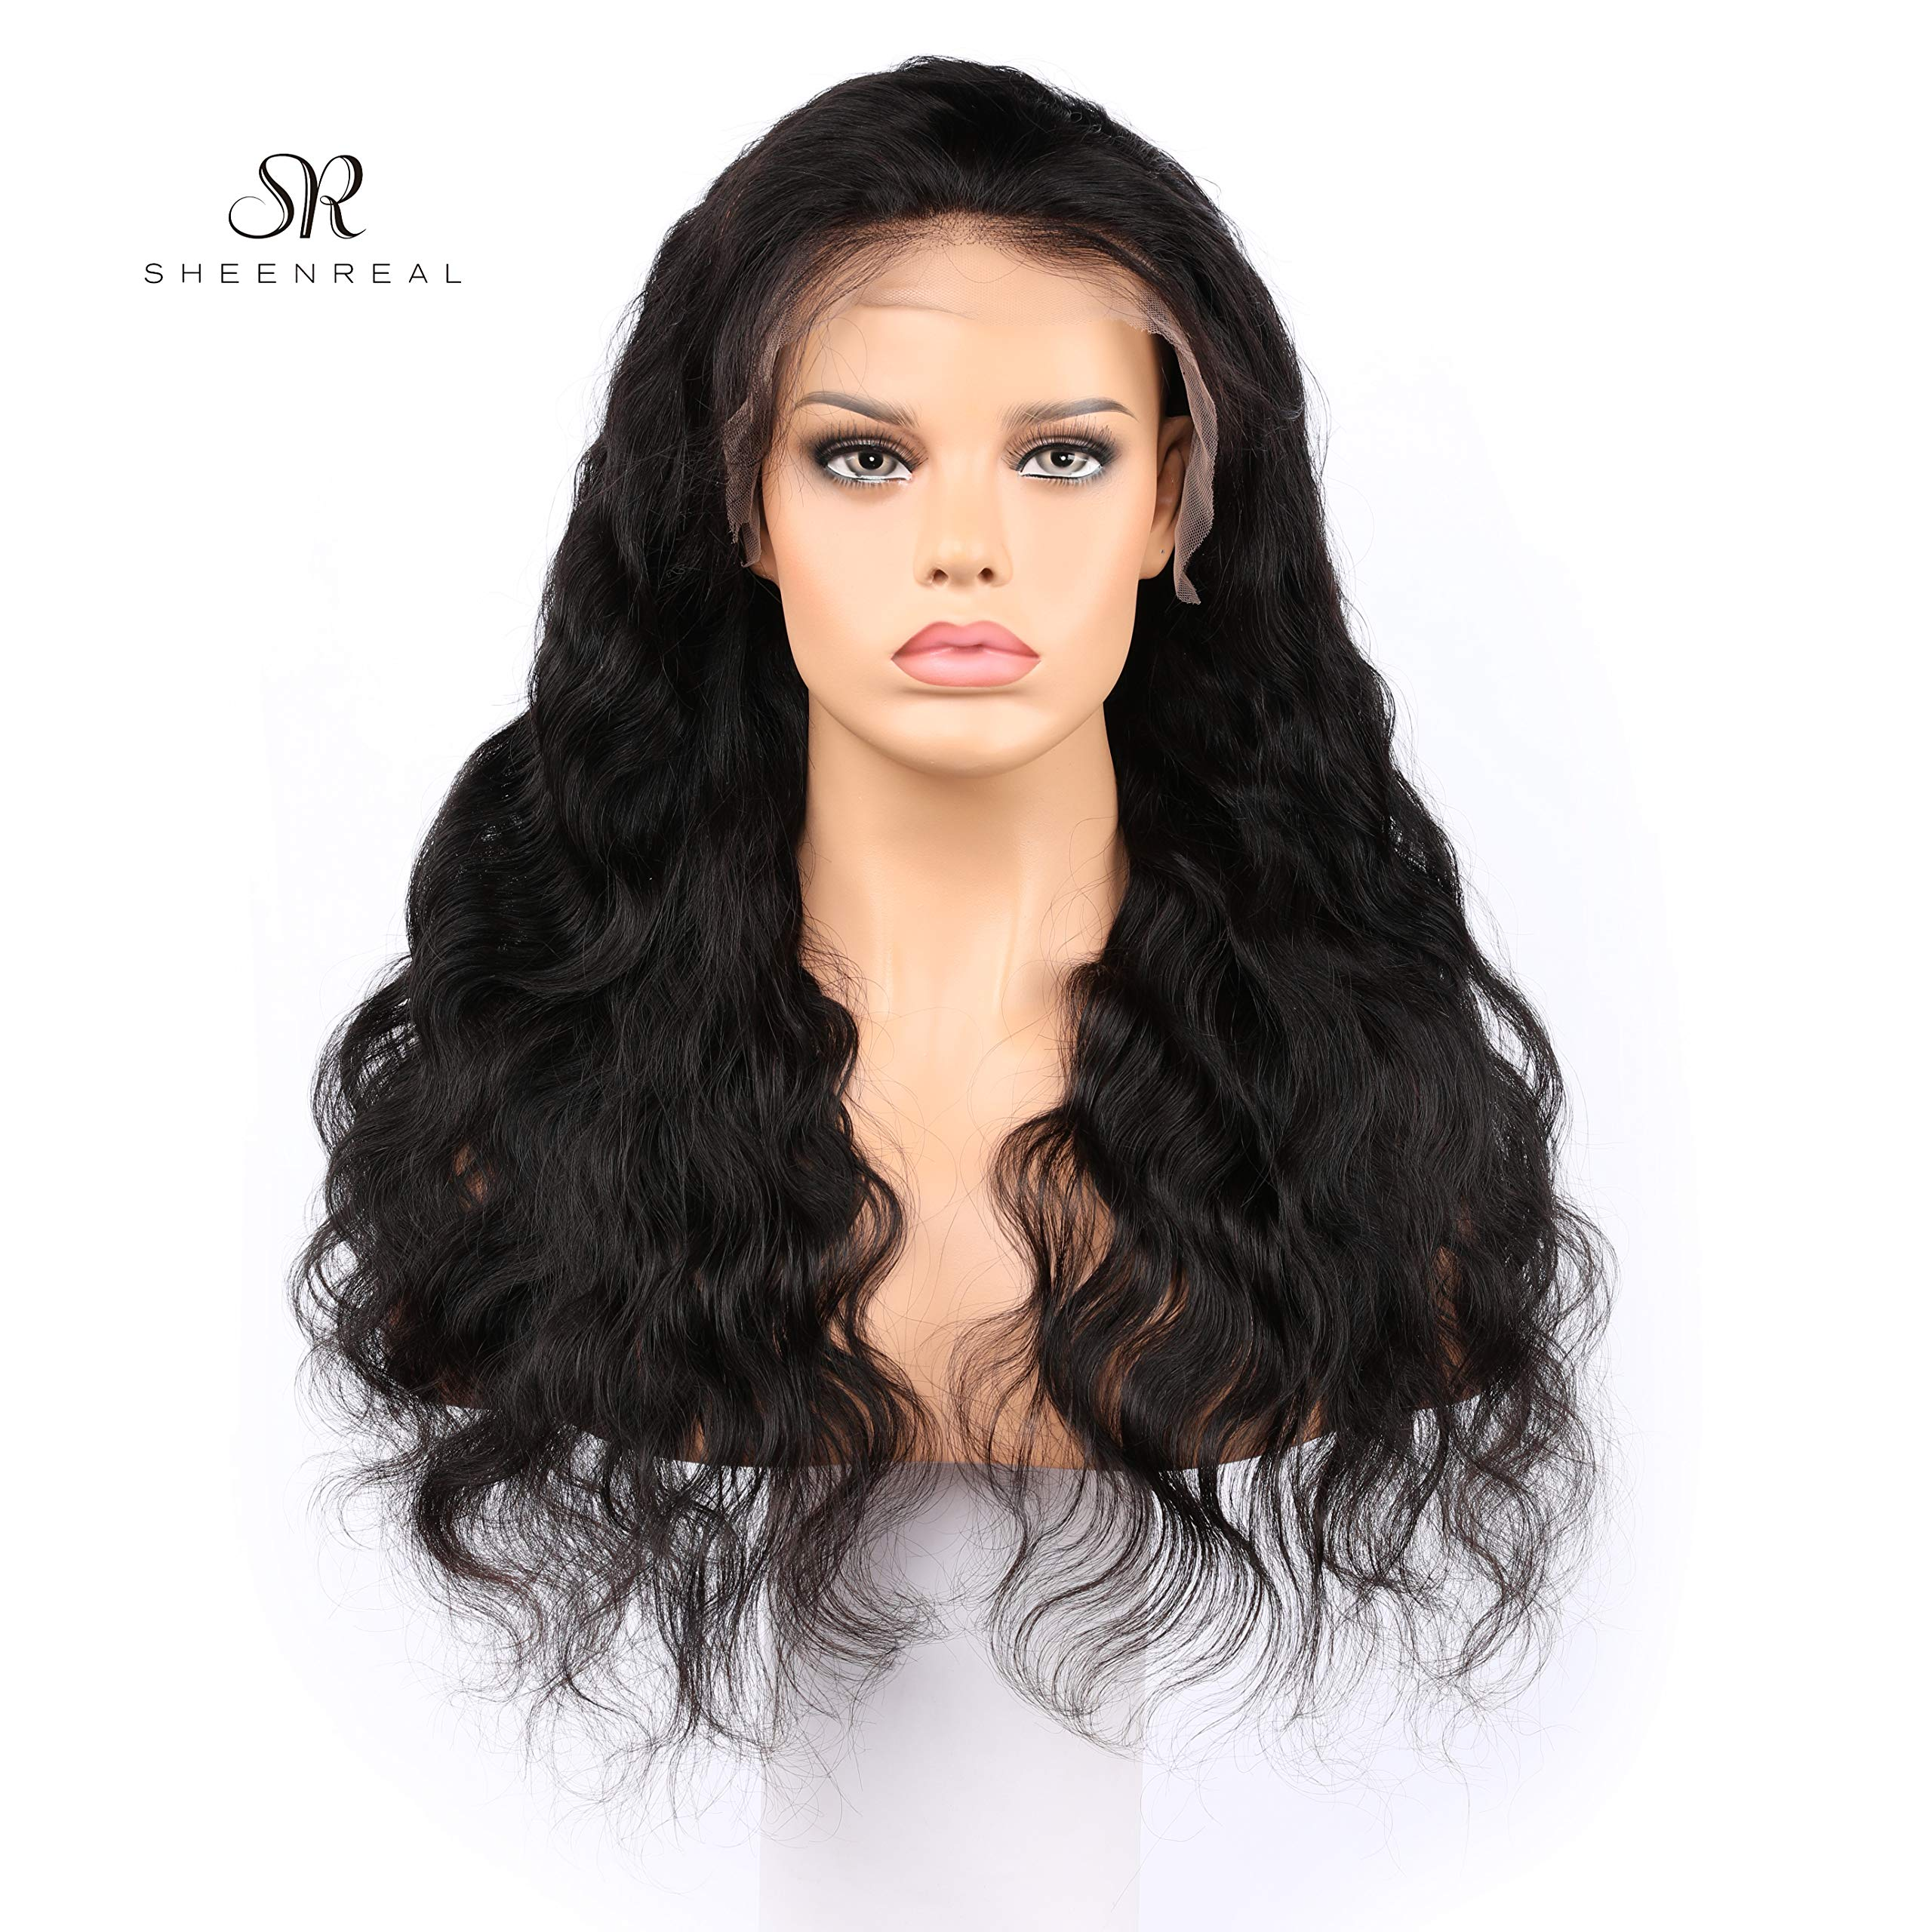 Body Wave Lace Front Wigs Human Hair 180% Density Glueless Brazilian Remy Wavy Human Hair Wigs Pre Plucked Natural Hairline Wigs for Women (16 Inch)- Sheenreal Hair